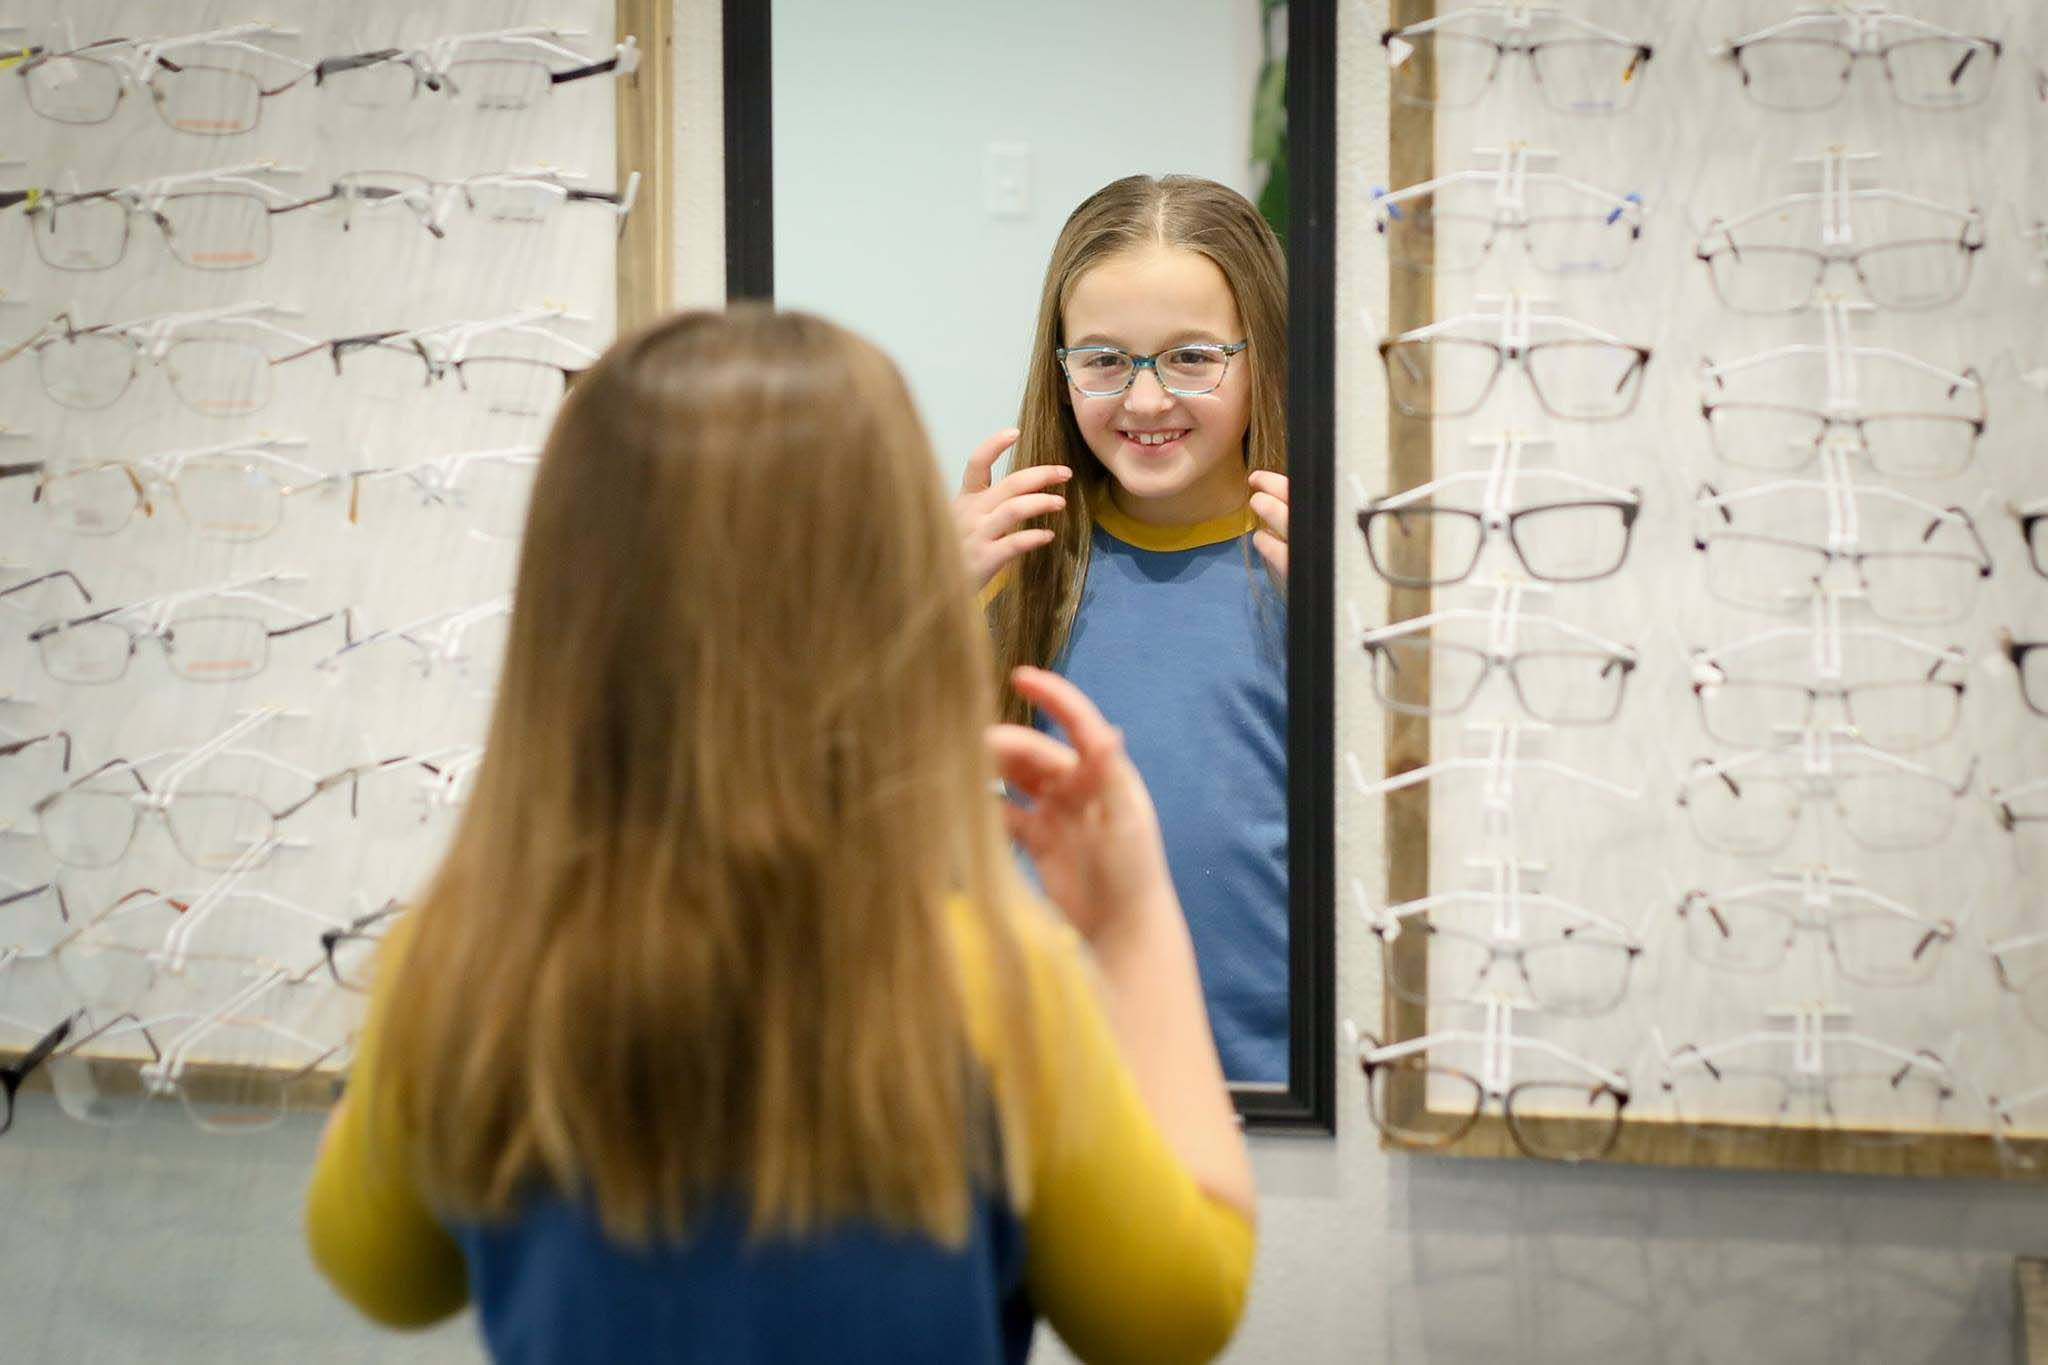 young girl trying on frames